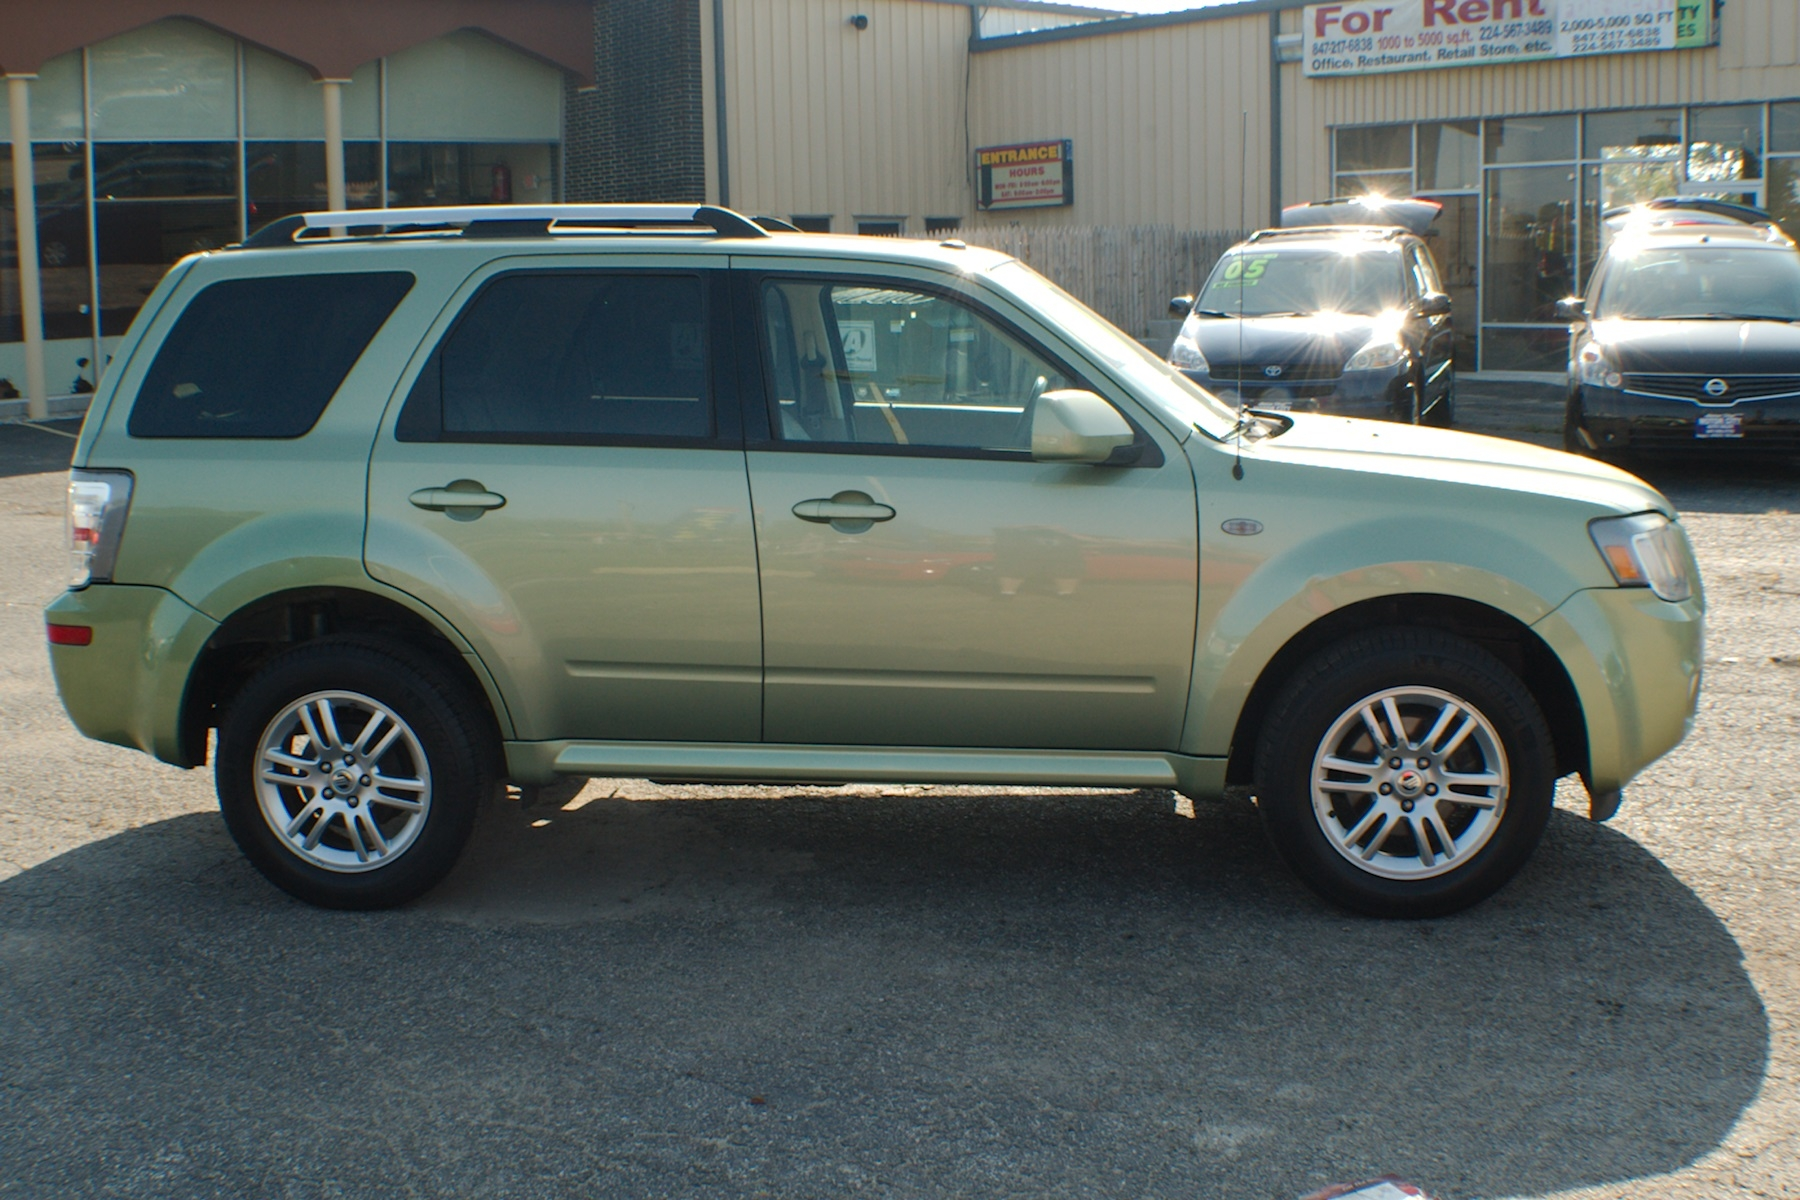 2009 Mercury Mariner Green SUV Used Car Sale Buffalo Grove Deerfield Fox Lake Antioch